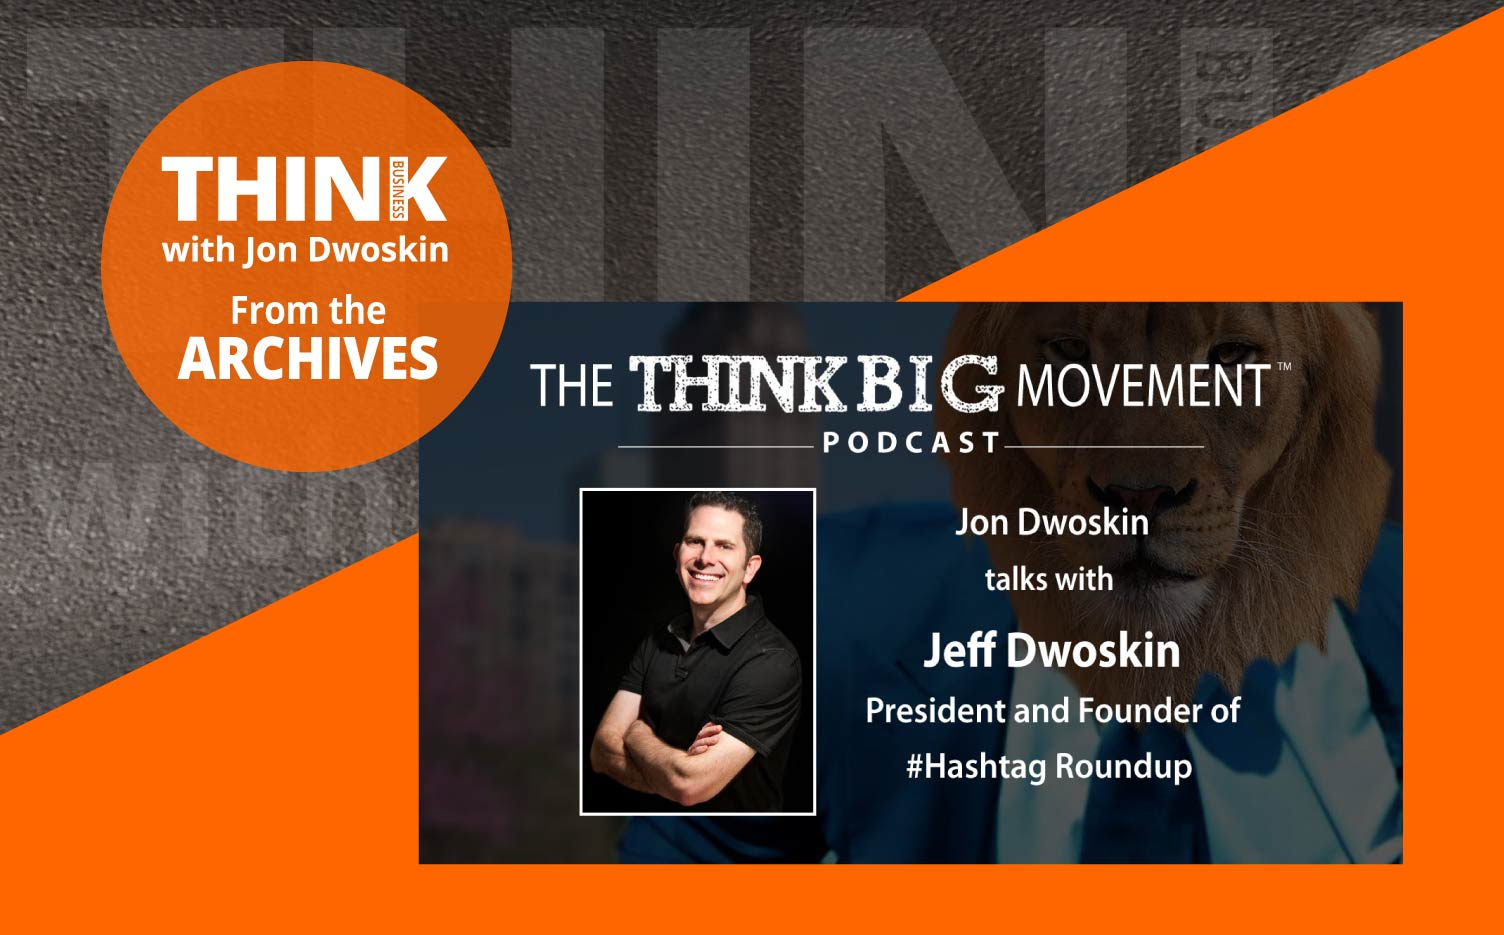 THINK Business Podcast: Jon Dwoskin Interviews Jeff Dwoskin, President and Founder of #Hashtag Roundup